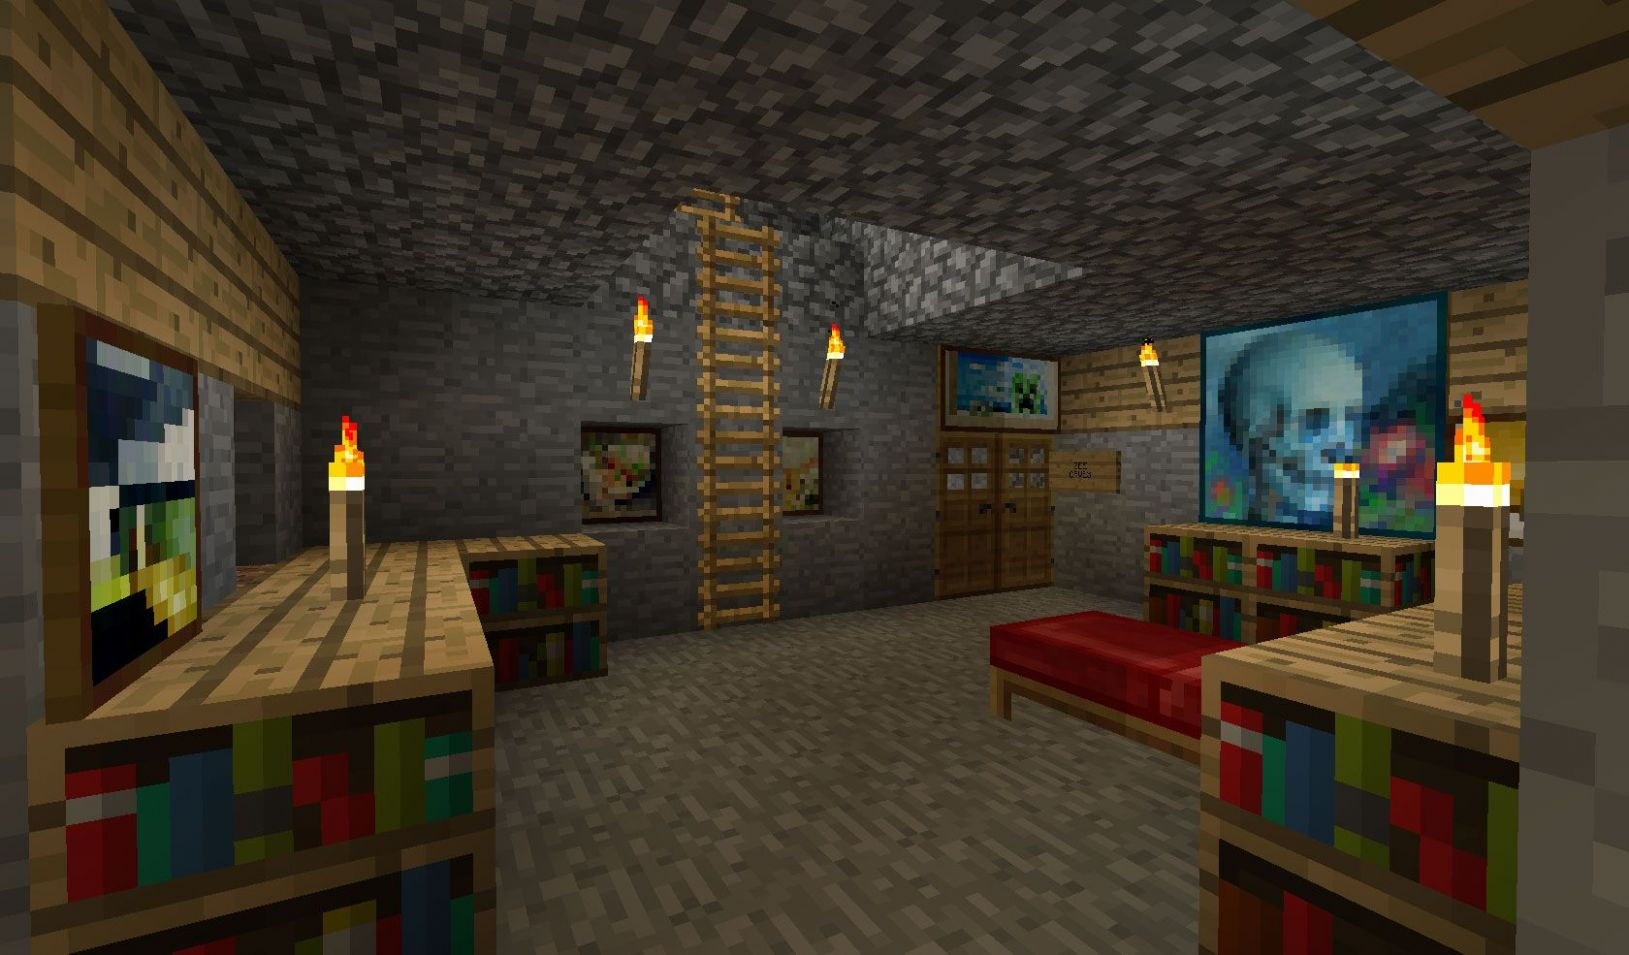 minecraft room ideas pocket edition | Minecraft bedroom decor ..